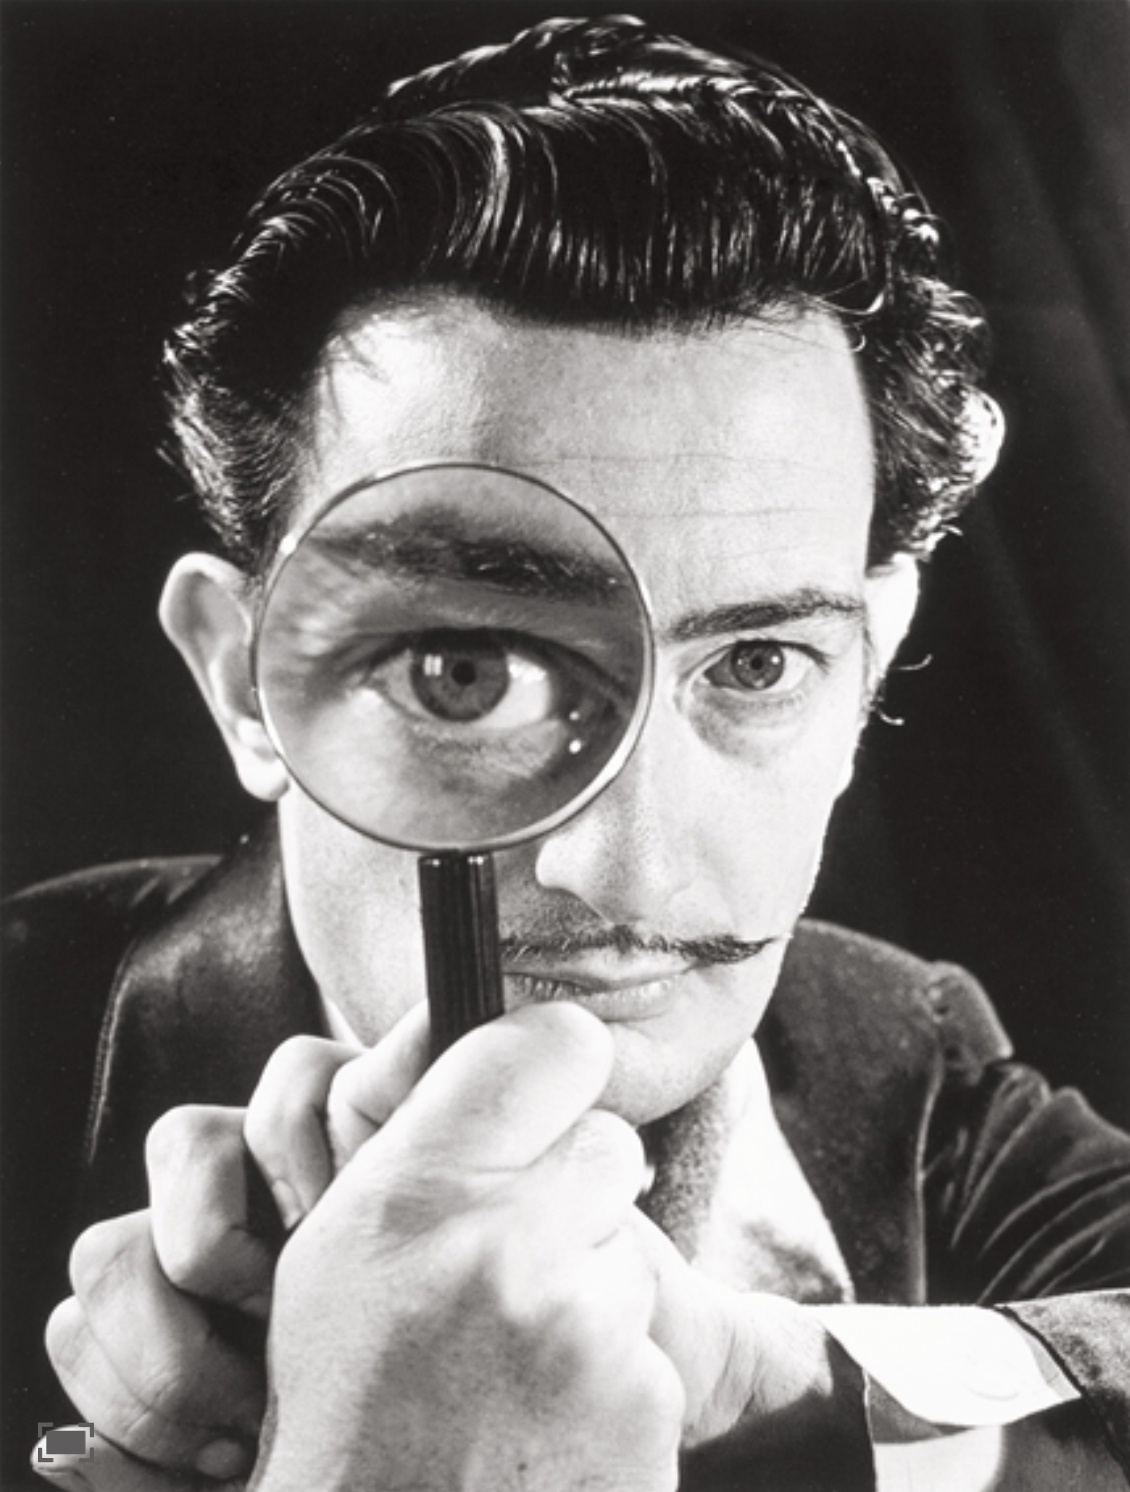 FIG 13 DALI WITH GLASS